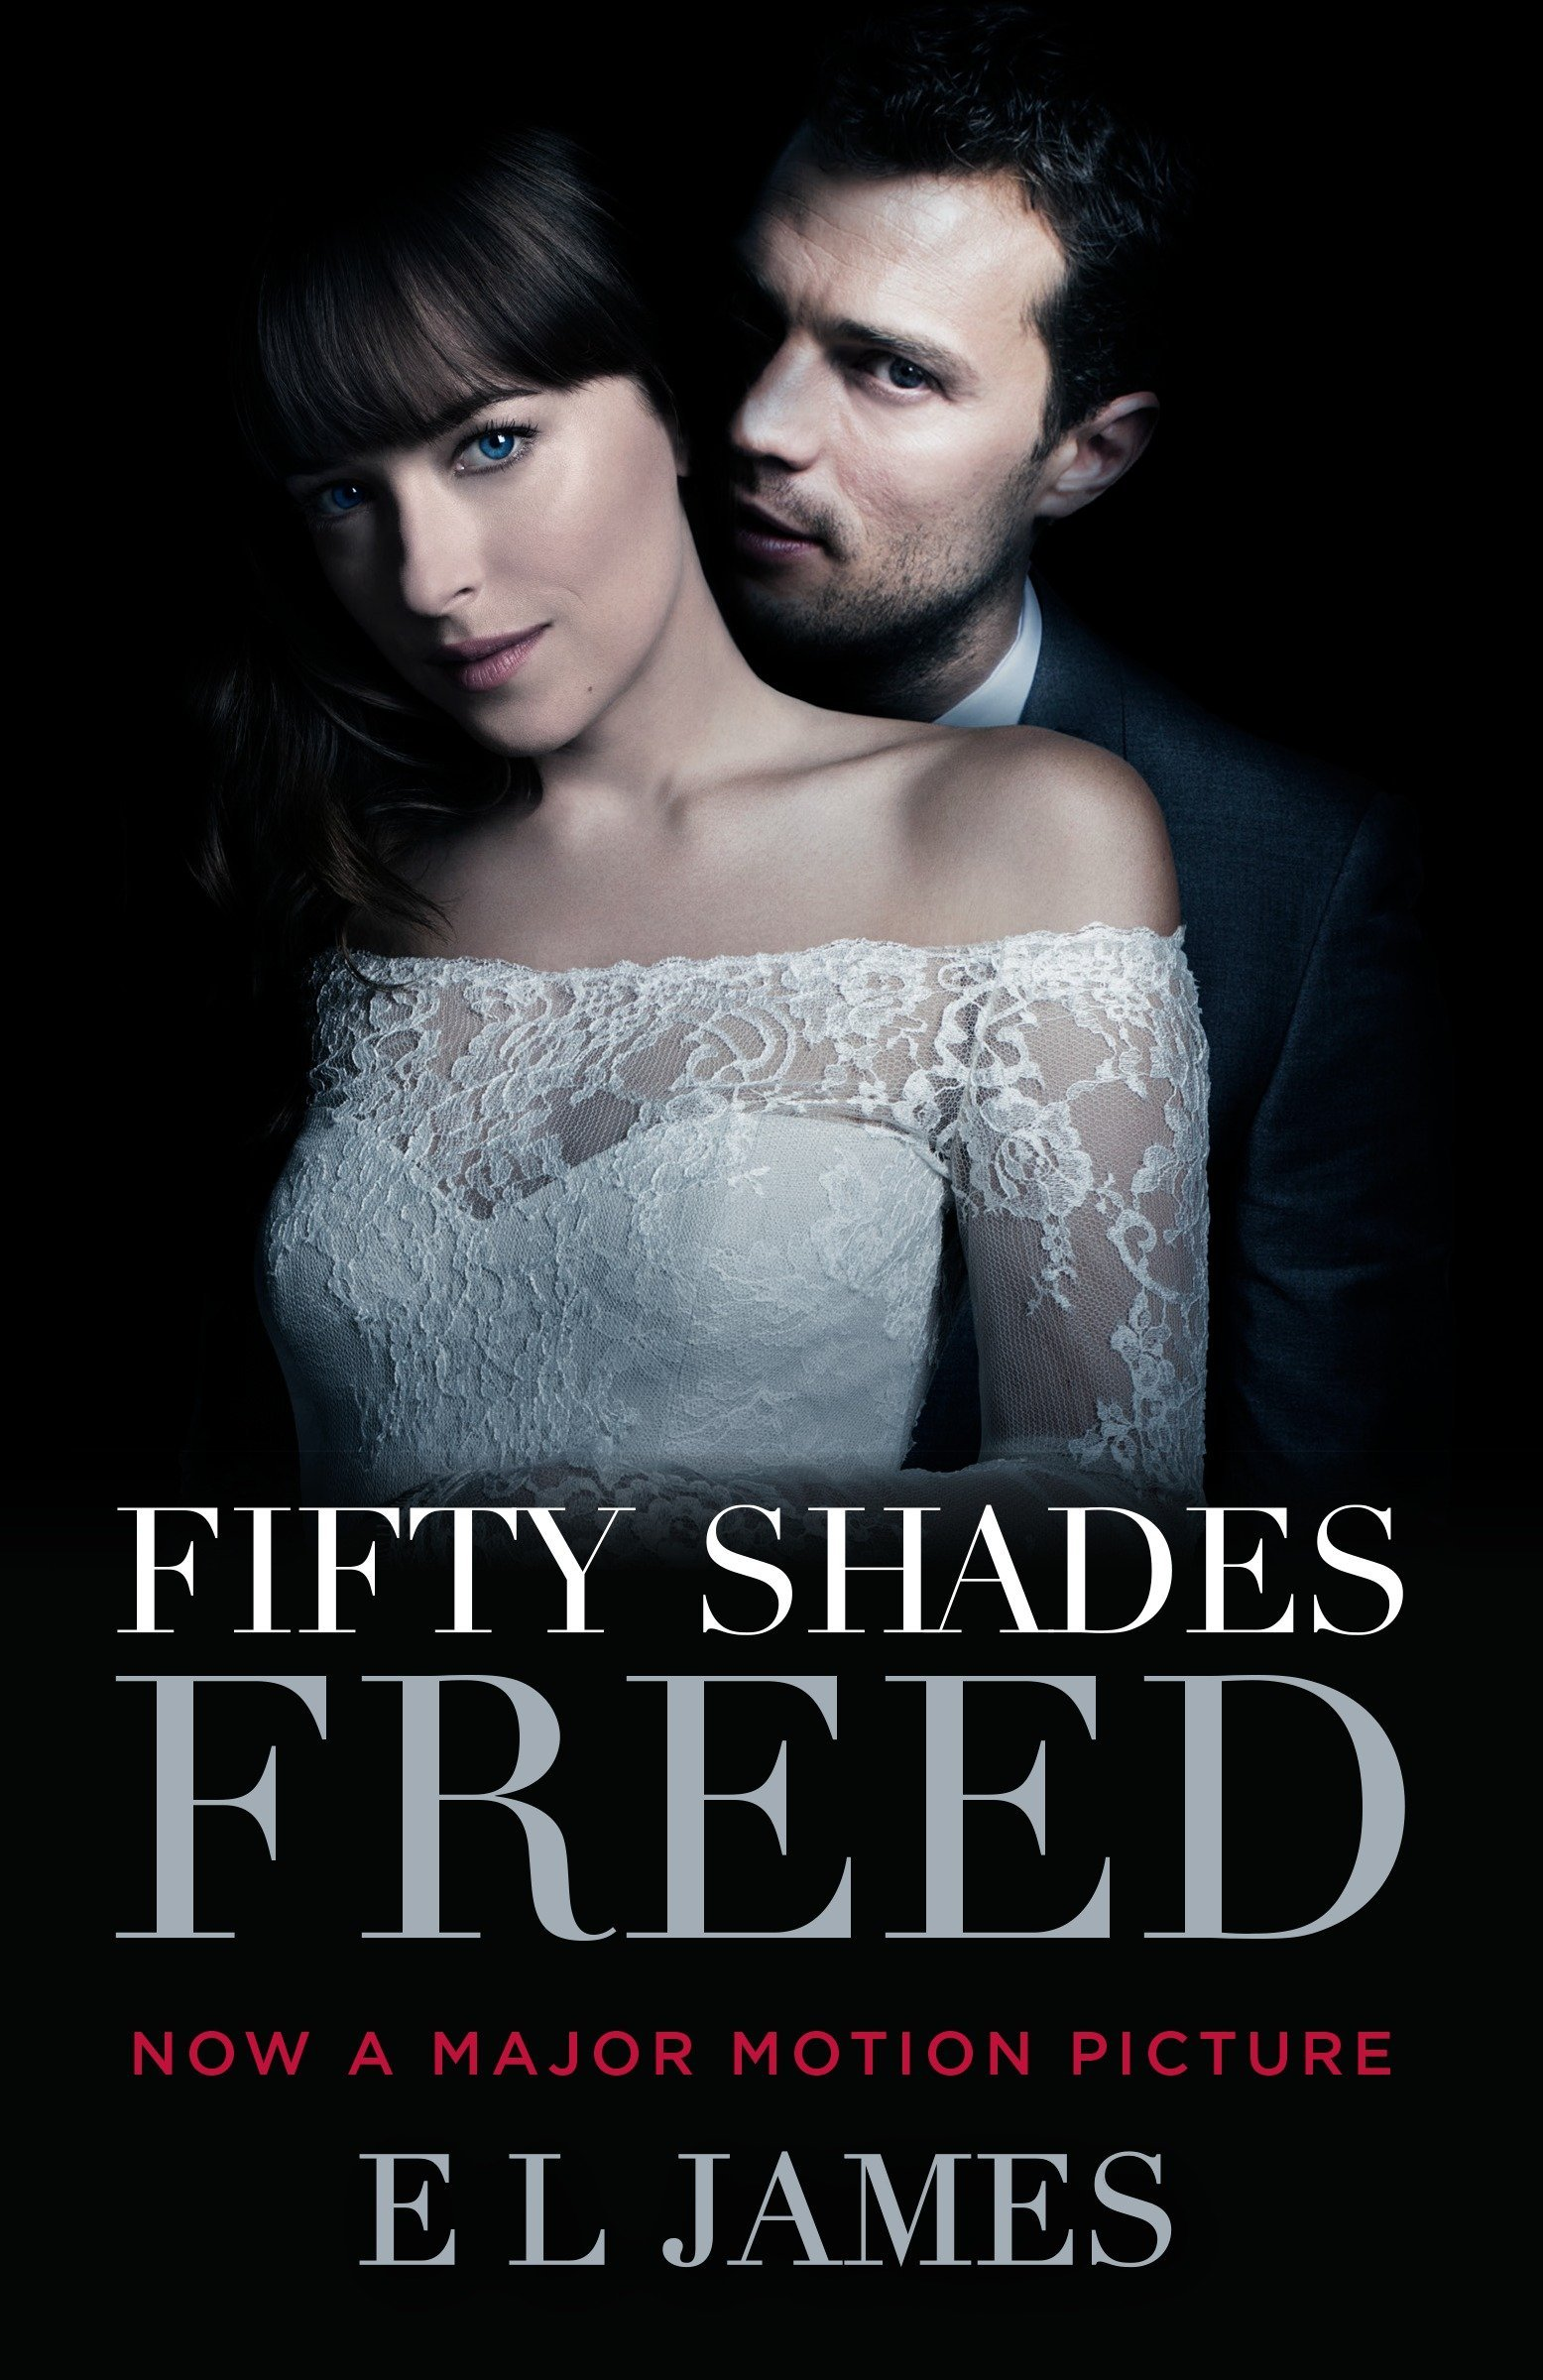 Fifty Shades Freed (Movie Tie-In): Book Three of the Fifty Shades Trilogy (Fifty  Shades of Grey Series): E L James: 9780525436201: Amazon.com: Books